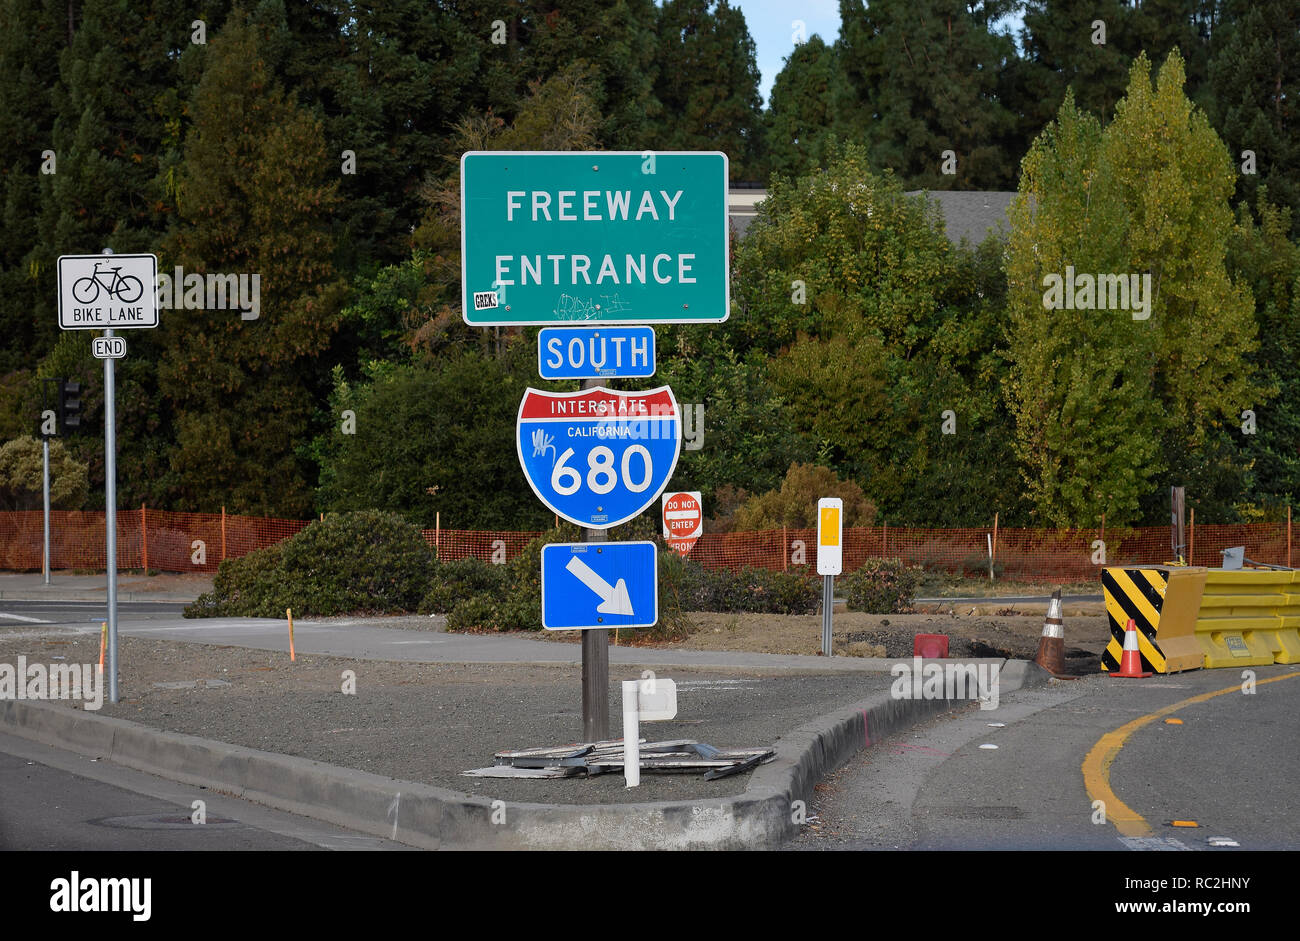 Interstate 680 Stock Photos & Interstate 680 Stock Images - Alamy